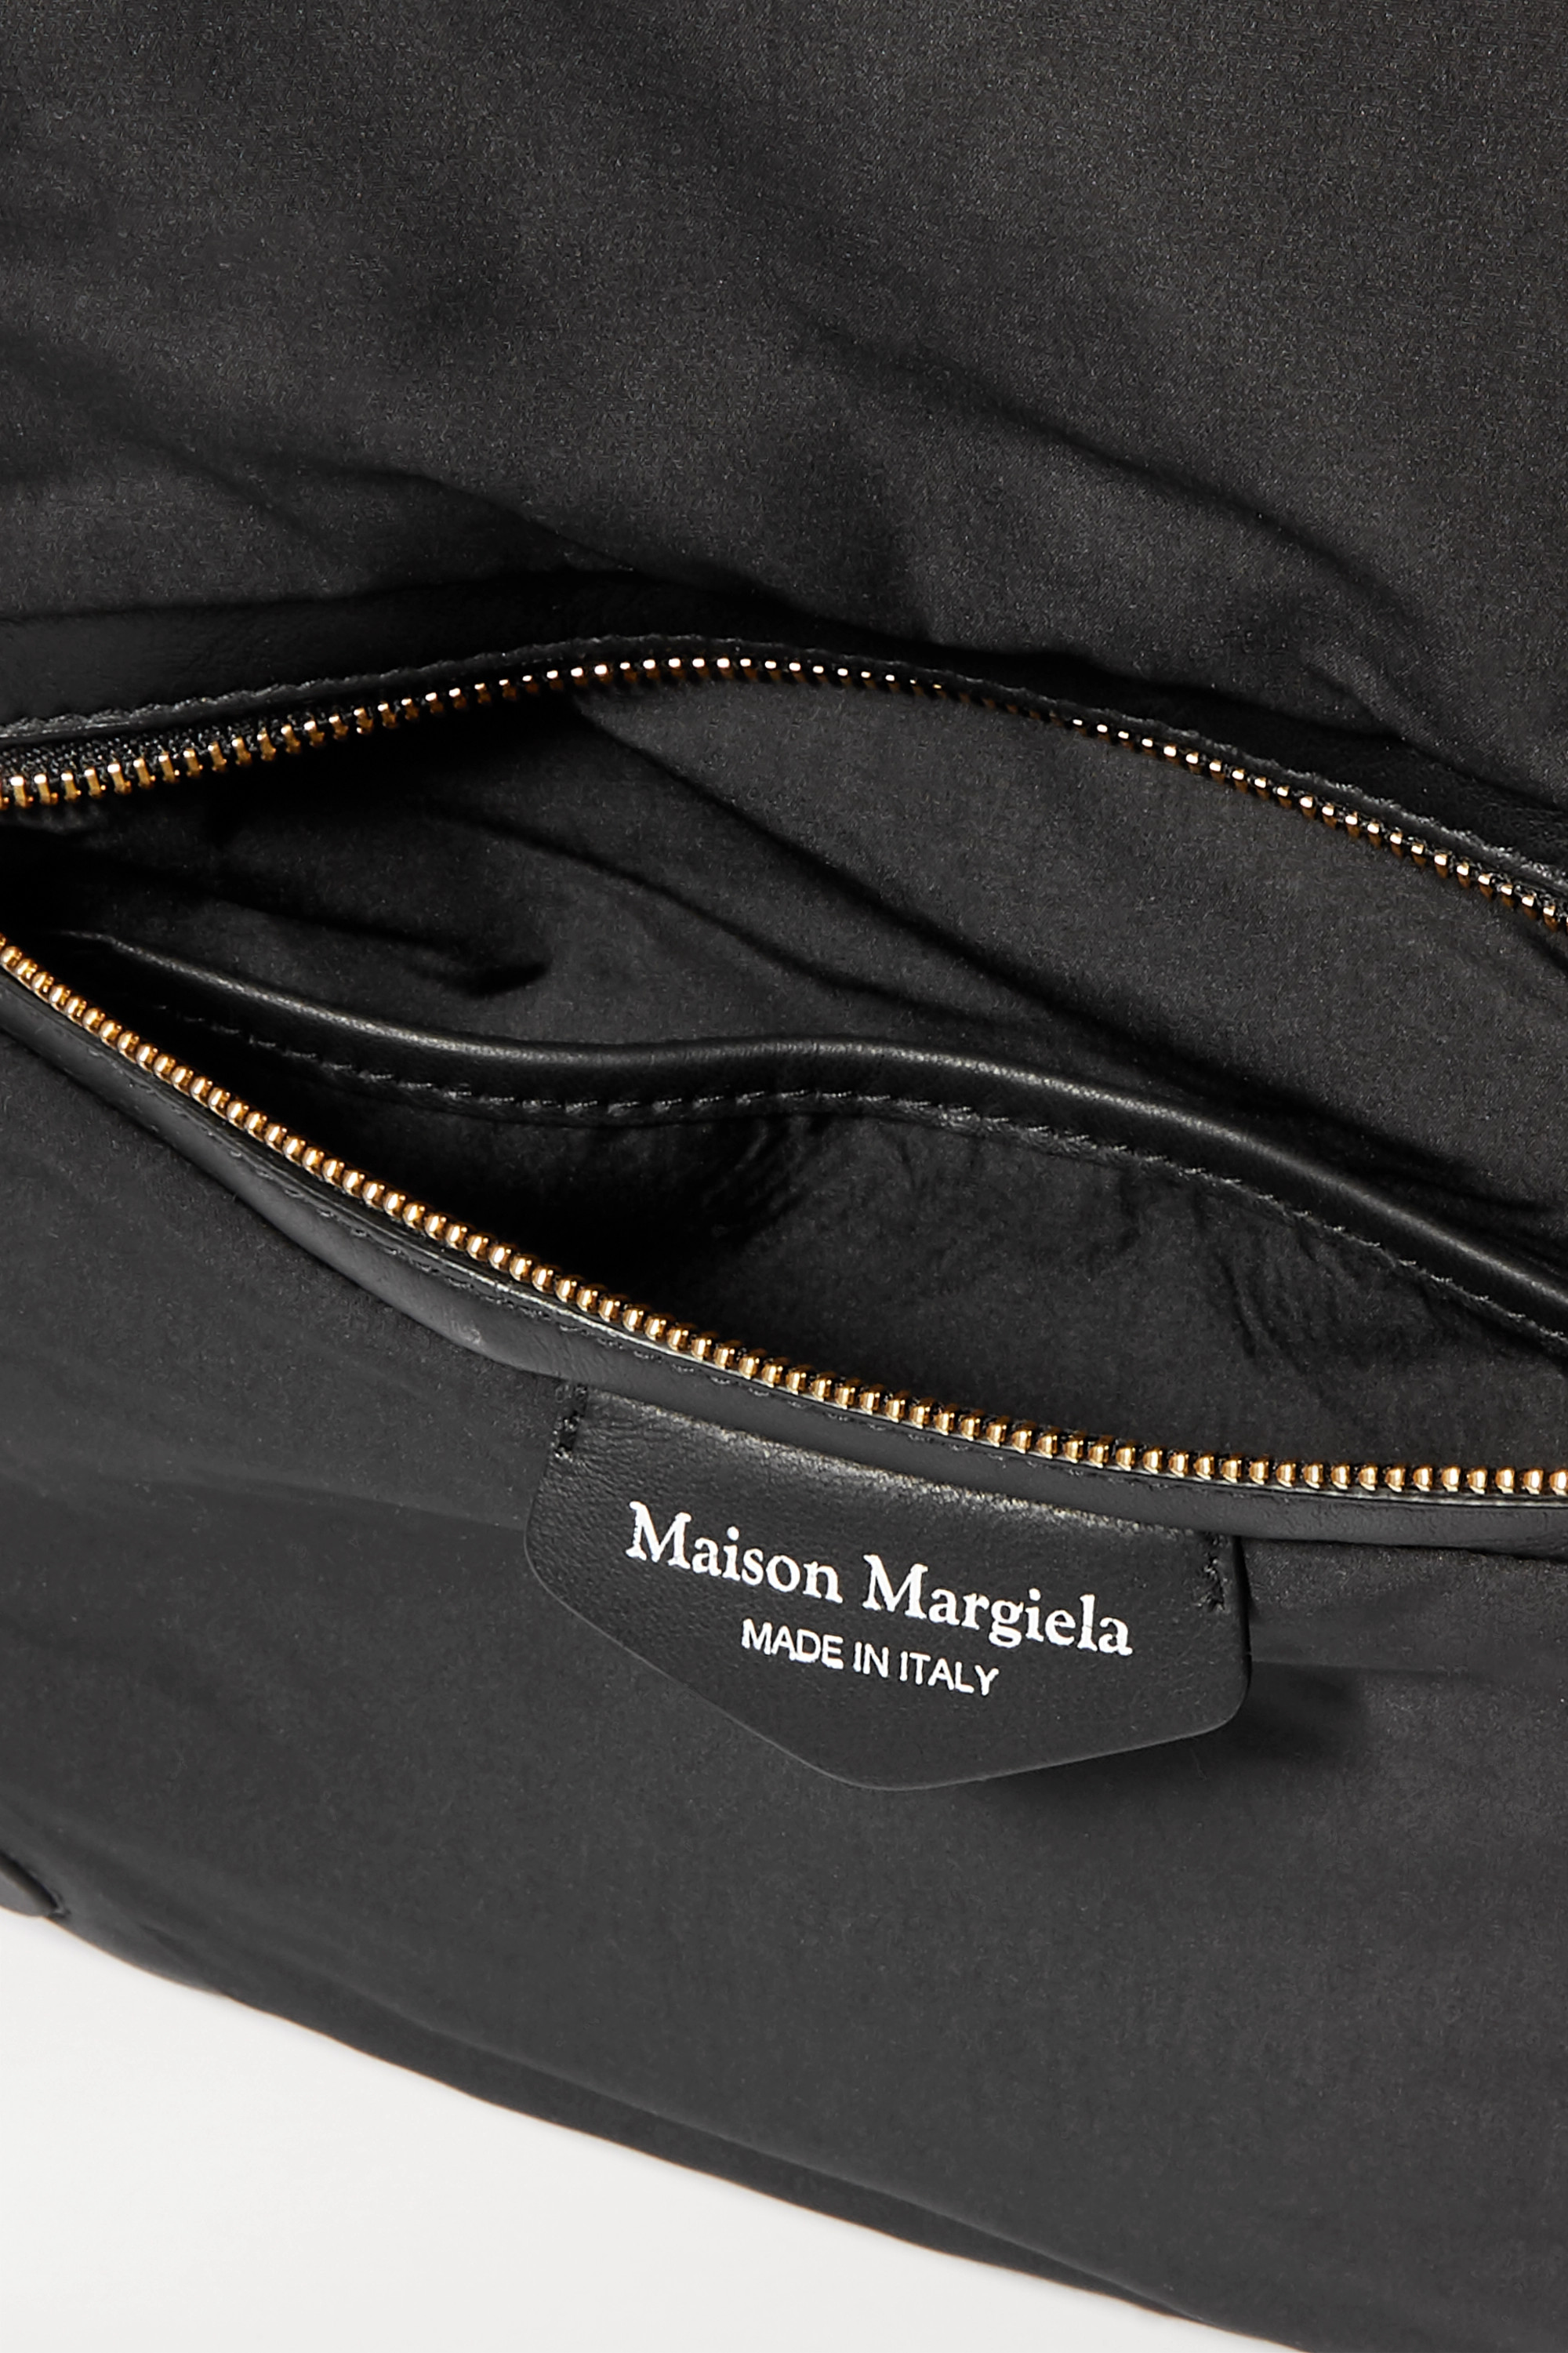 Maison Margiela Glam Slam quilted leather shoulder bag